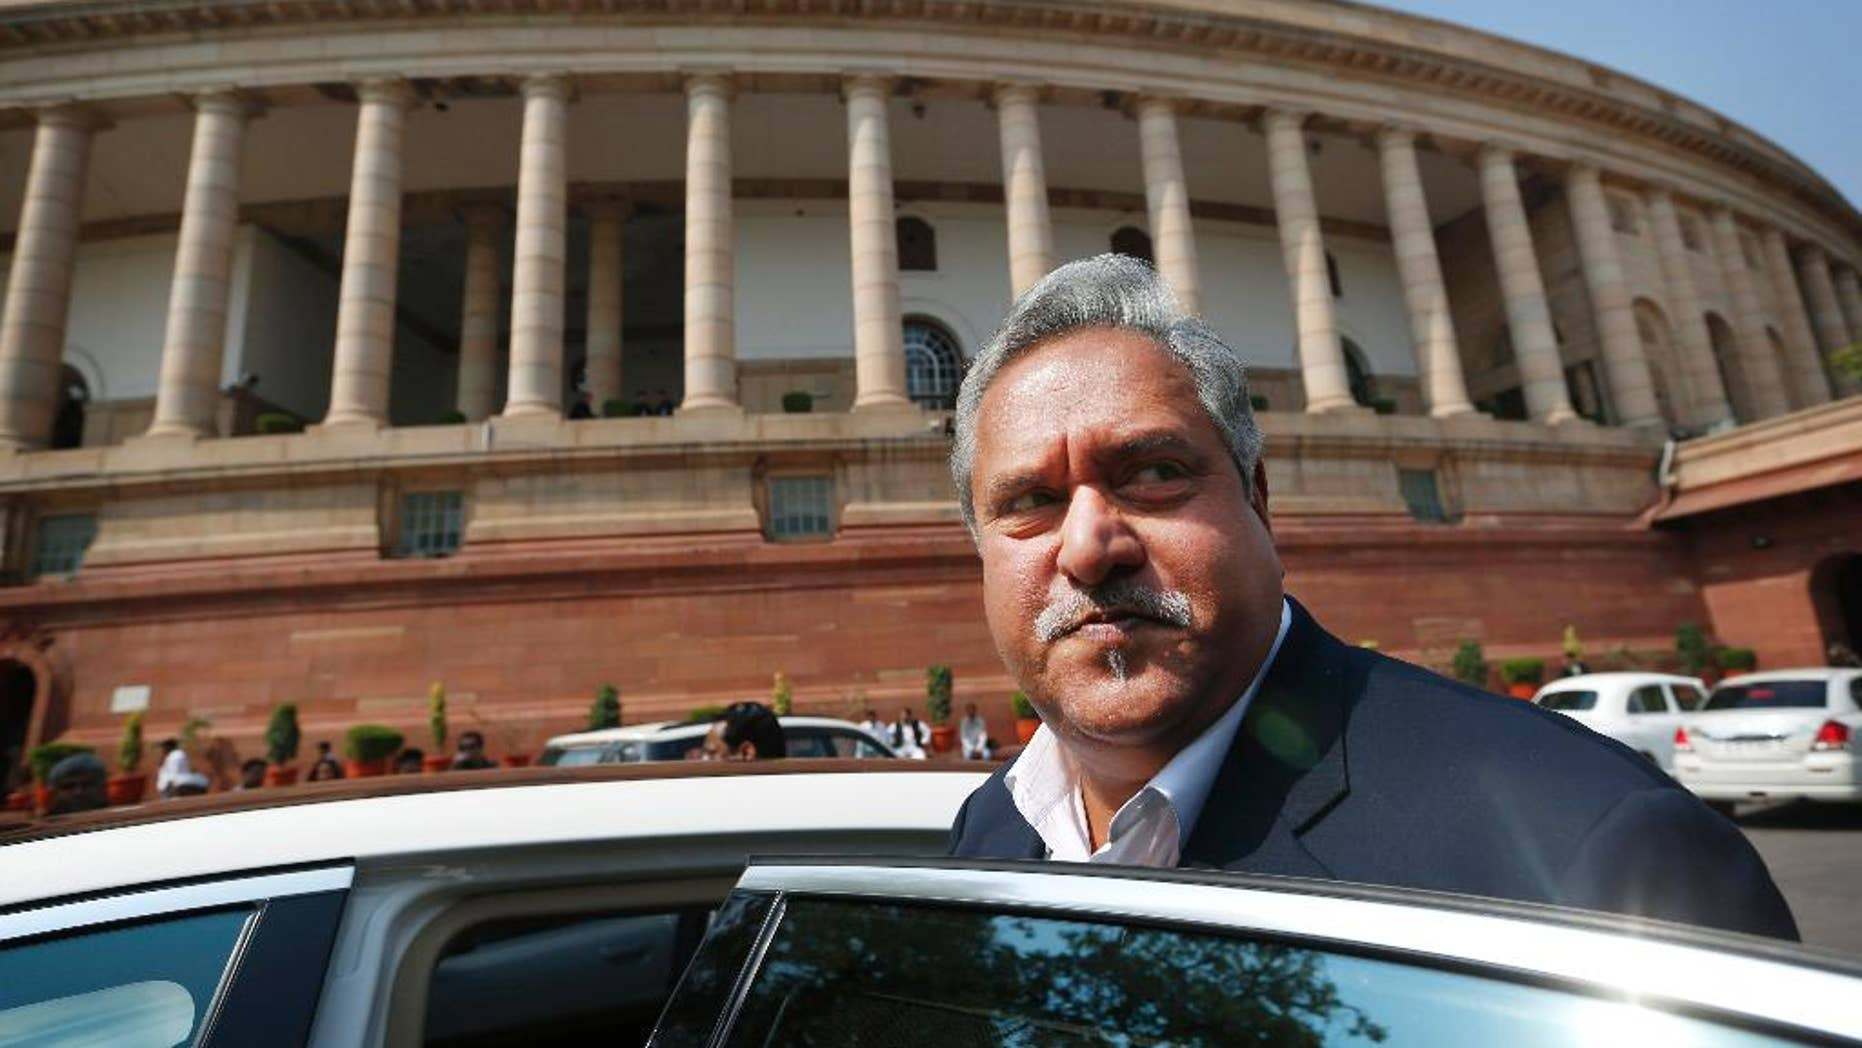 FILE- In this Feb. 27, 2013 file photo, Indian business tycoon and owner of Kingfisher Airlines Vijay Mallya gets into his car outside the Parliament in New Delhi, India.  India has revoked the passport of the flamboyant Indian businessman Mallya accused of fleeing to London in March while owing more than a billion dollars to Indian banks. External Affairs Ministry spokesman Vikas Swarup said Sunday, April 24, 2016 that the decision to revoke Mallya's passport was taken considering the evidence gathered by India's Enforcement Directorate, which has been investigating the tycoon's massive debts. (AP Photo/Saurabh Das, file)